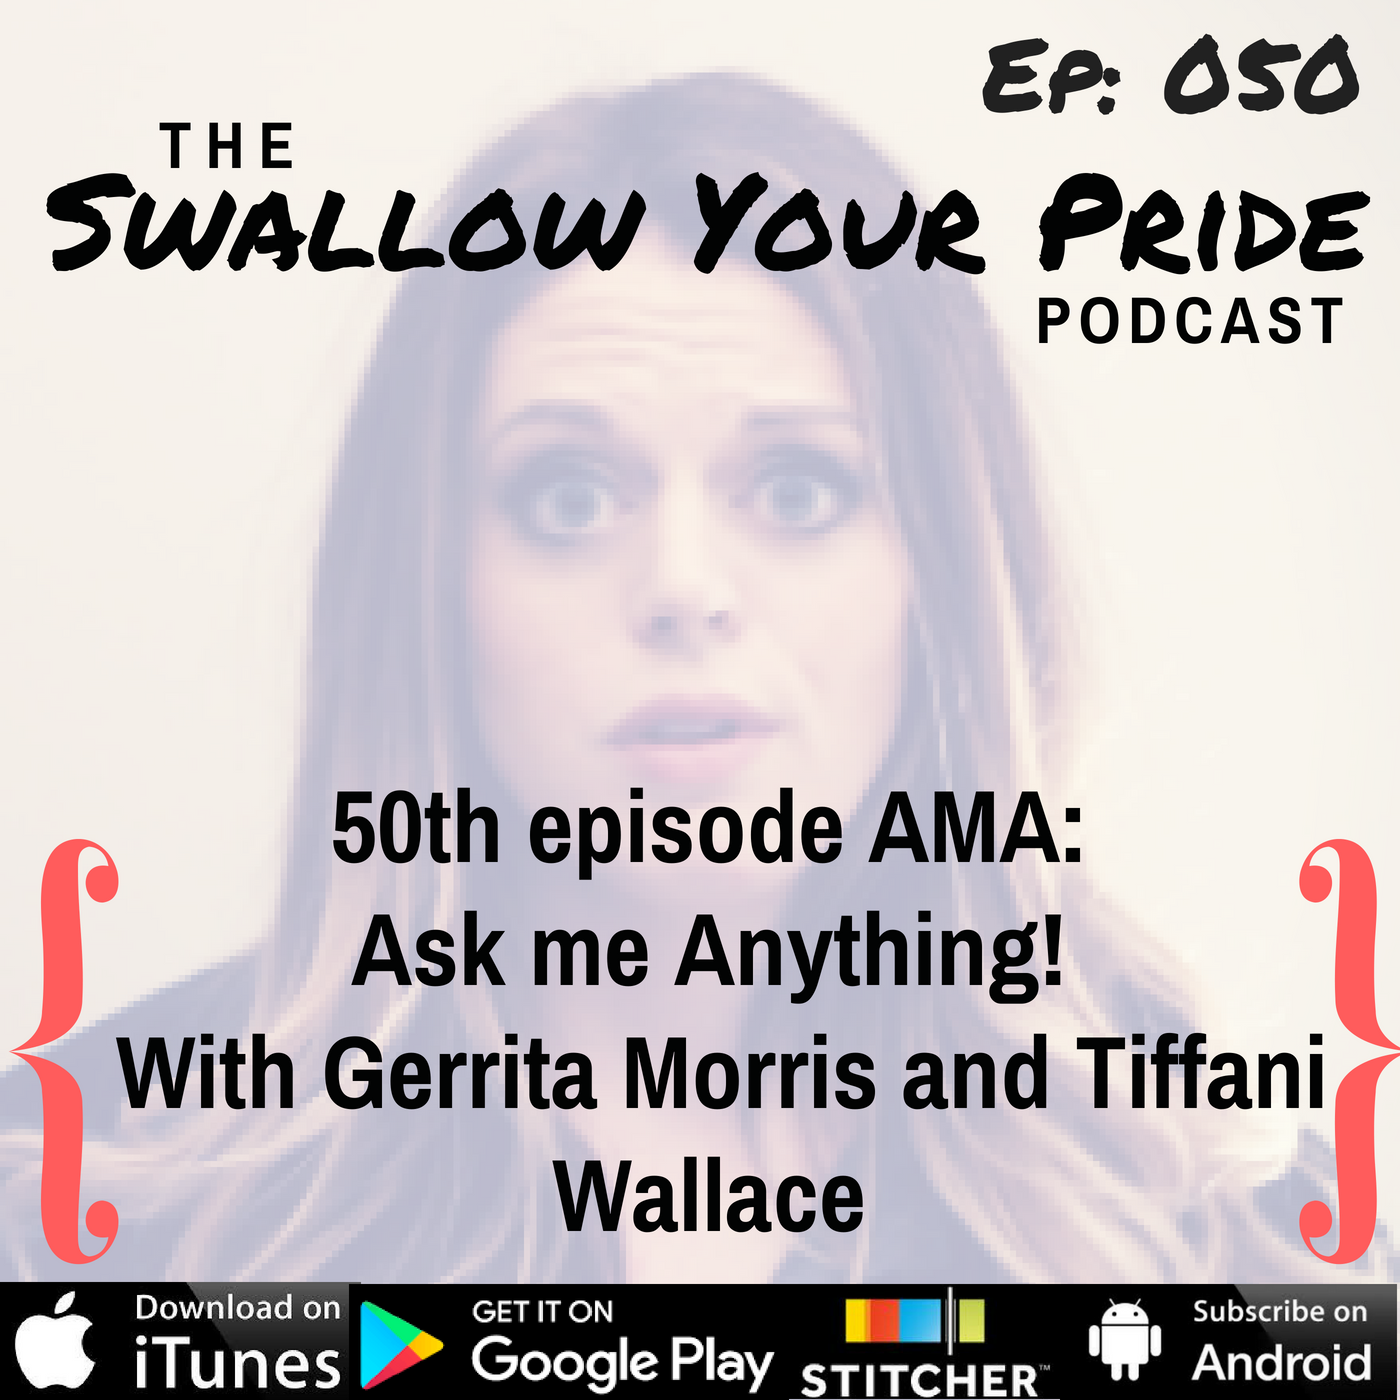 50th episode AMA: Ask me Anything! With Gerrita Morris and Tiffani Wallace